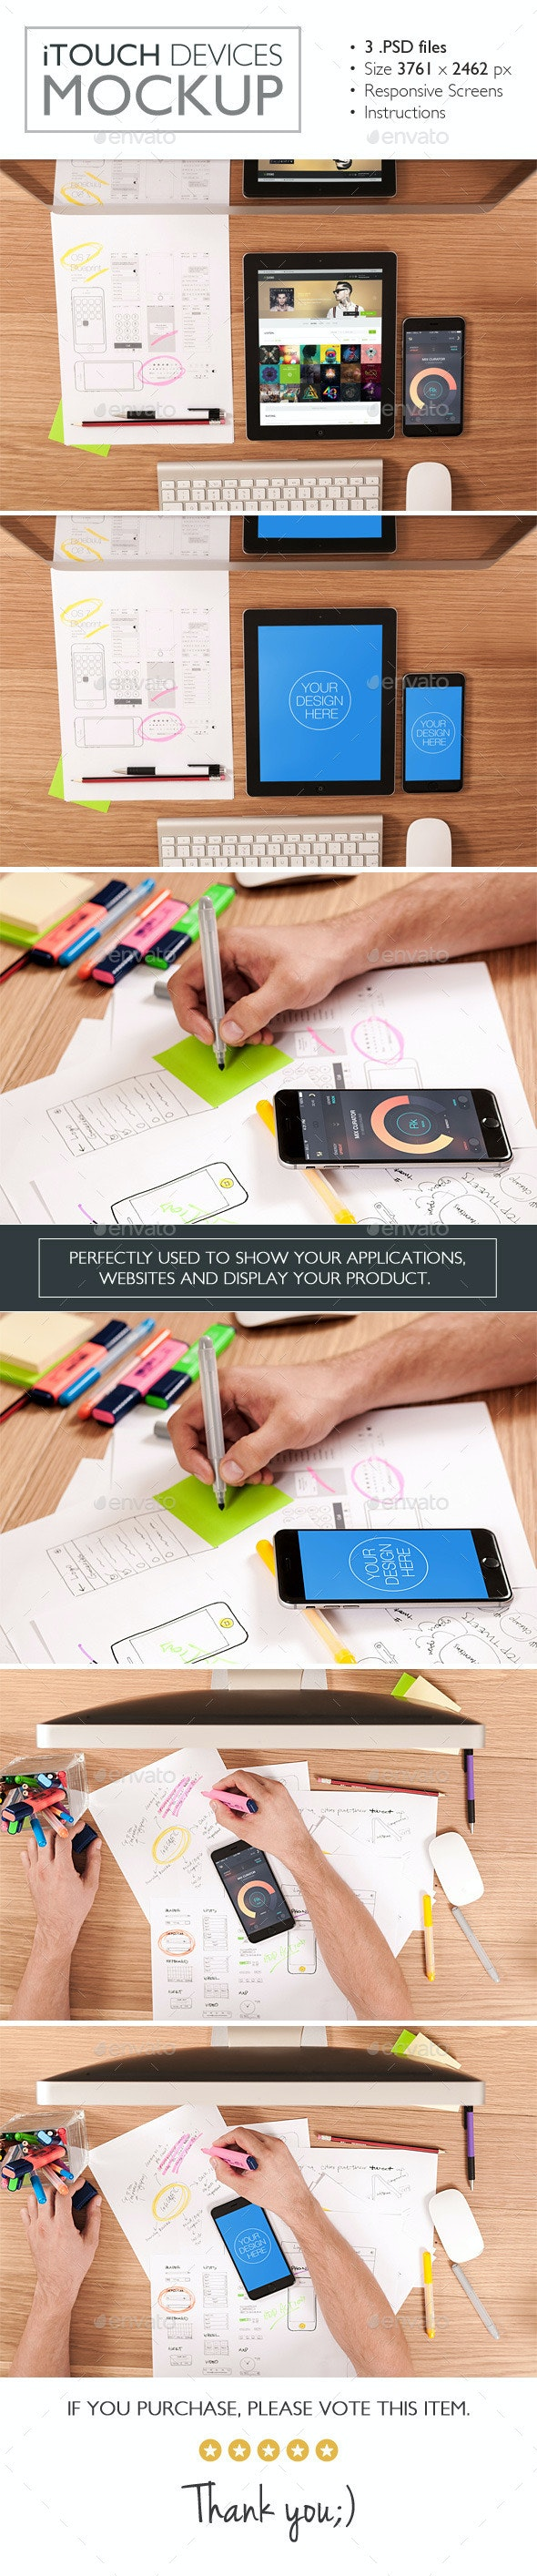 iTouch Devices Mockup - Product Mock-Ups Graphics